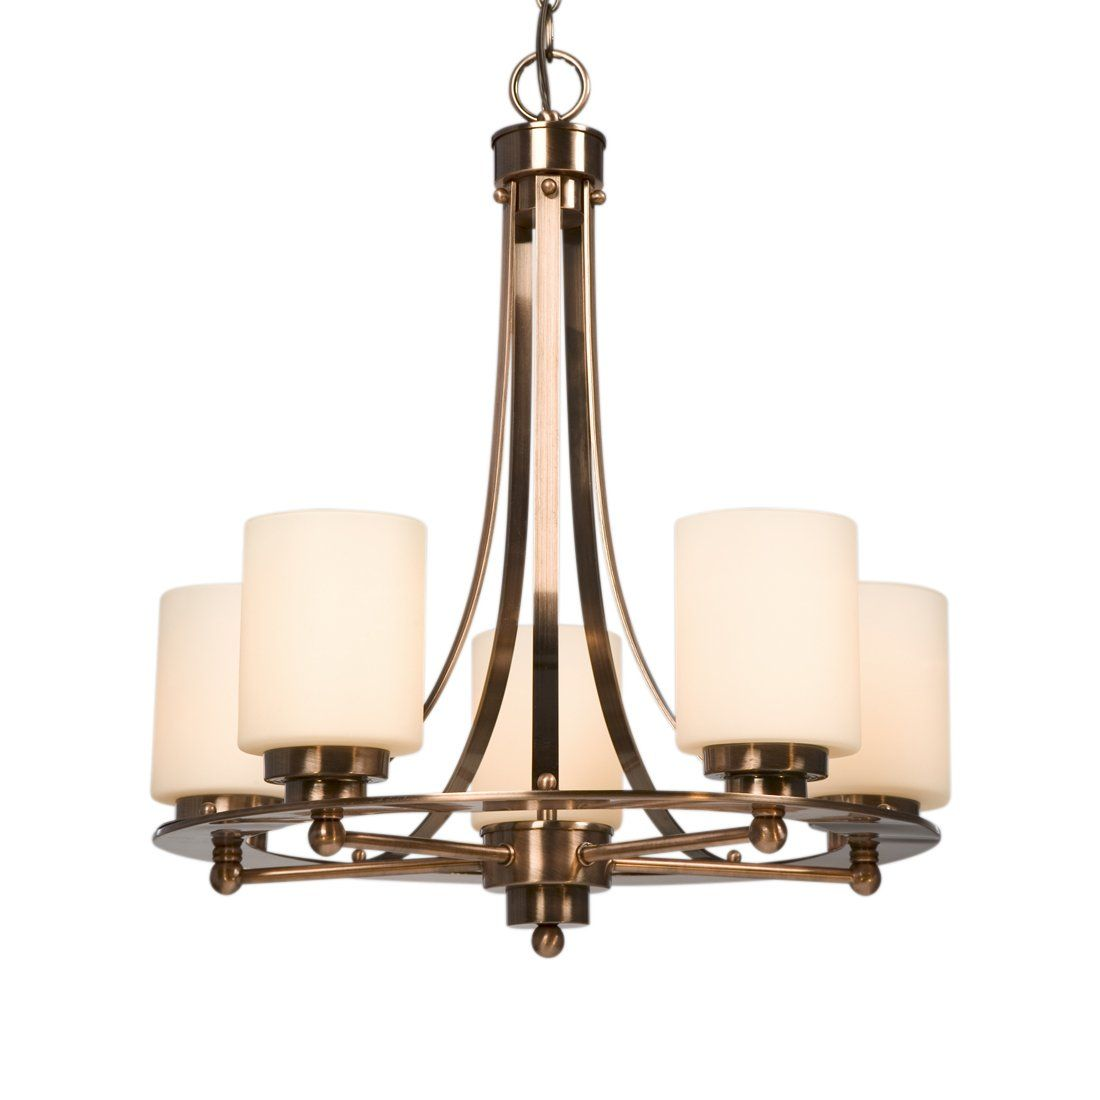 Shop galaxy lighting 800423acp logan 5 light chandelier at atg shop galaxy lighting logan chandelier at lowes canada find our selection of chandeliers at the lowest price guaranteed with price match off arubaitofo Images